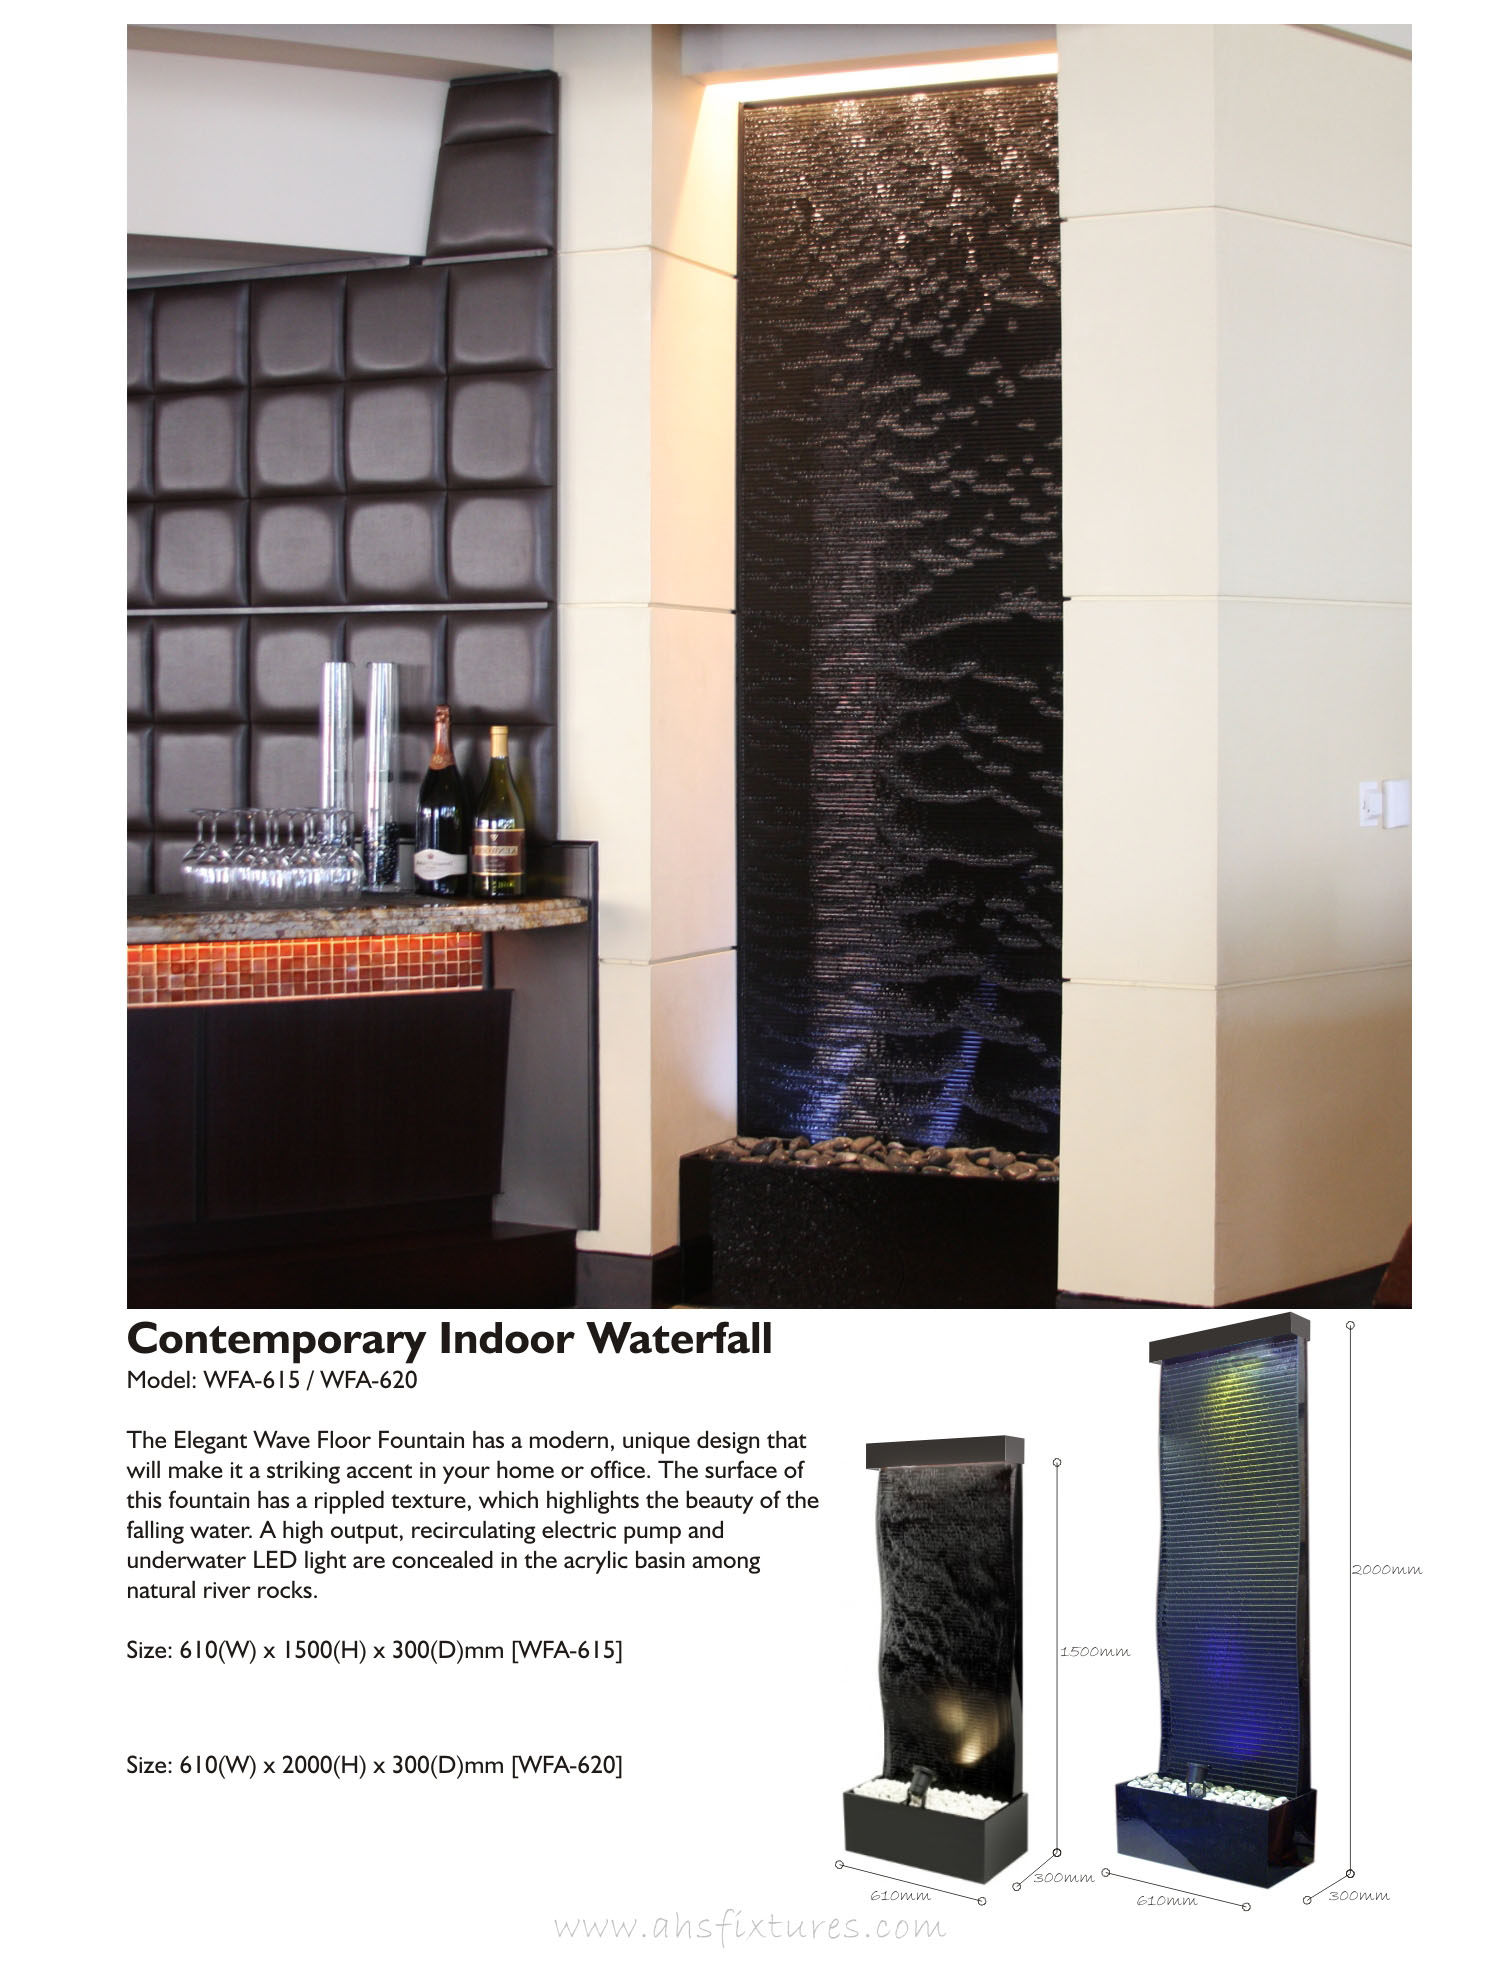 WFA-620 Contemporary Indoor Waterfall Fountains